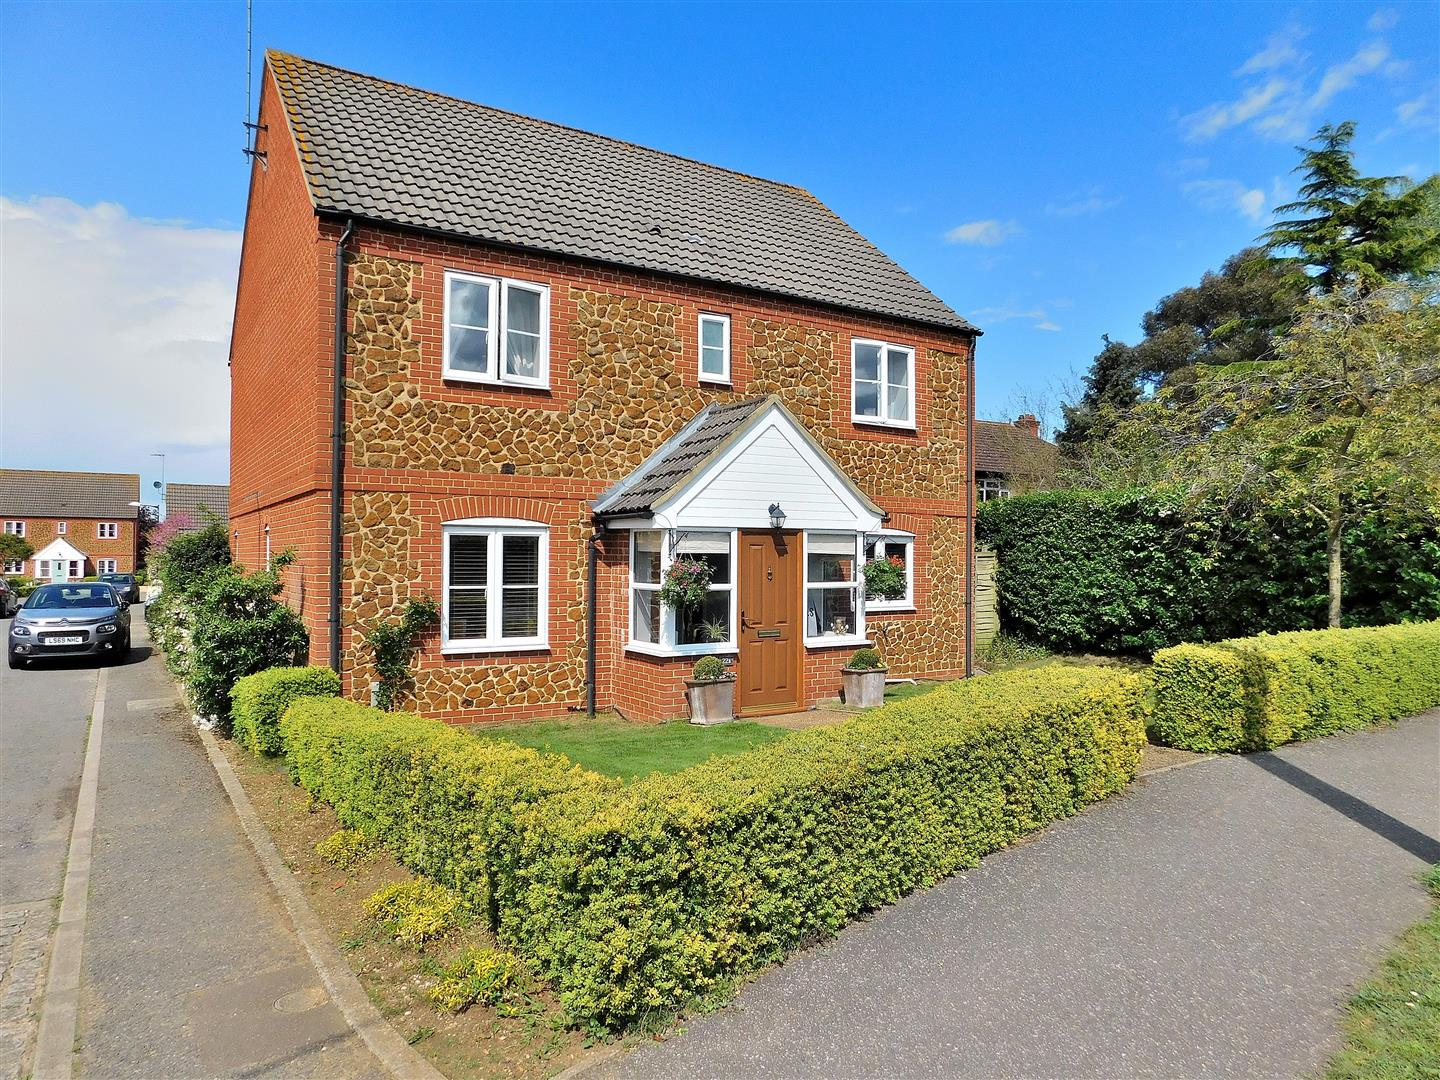 4 bed detached house for sale in Station Road, King's Lynn - Property Image 1